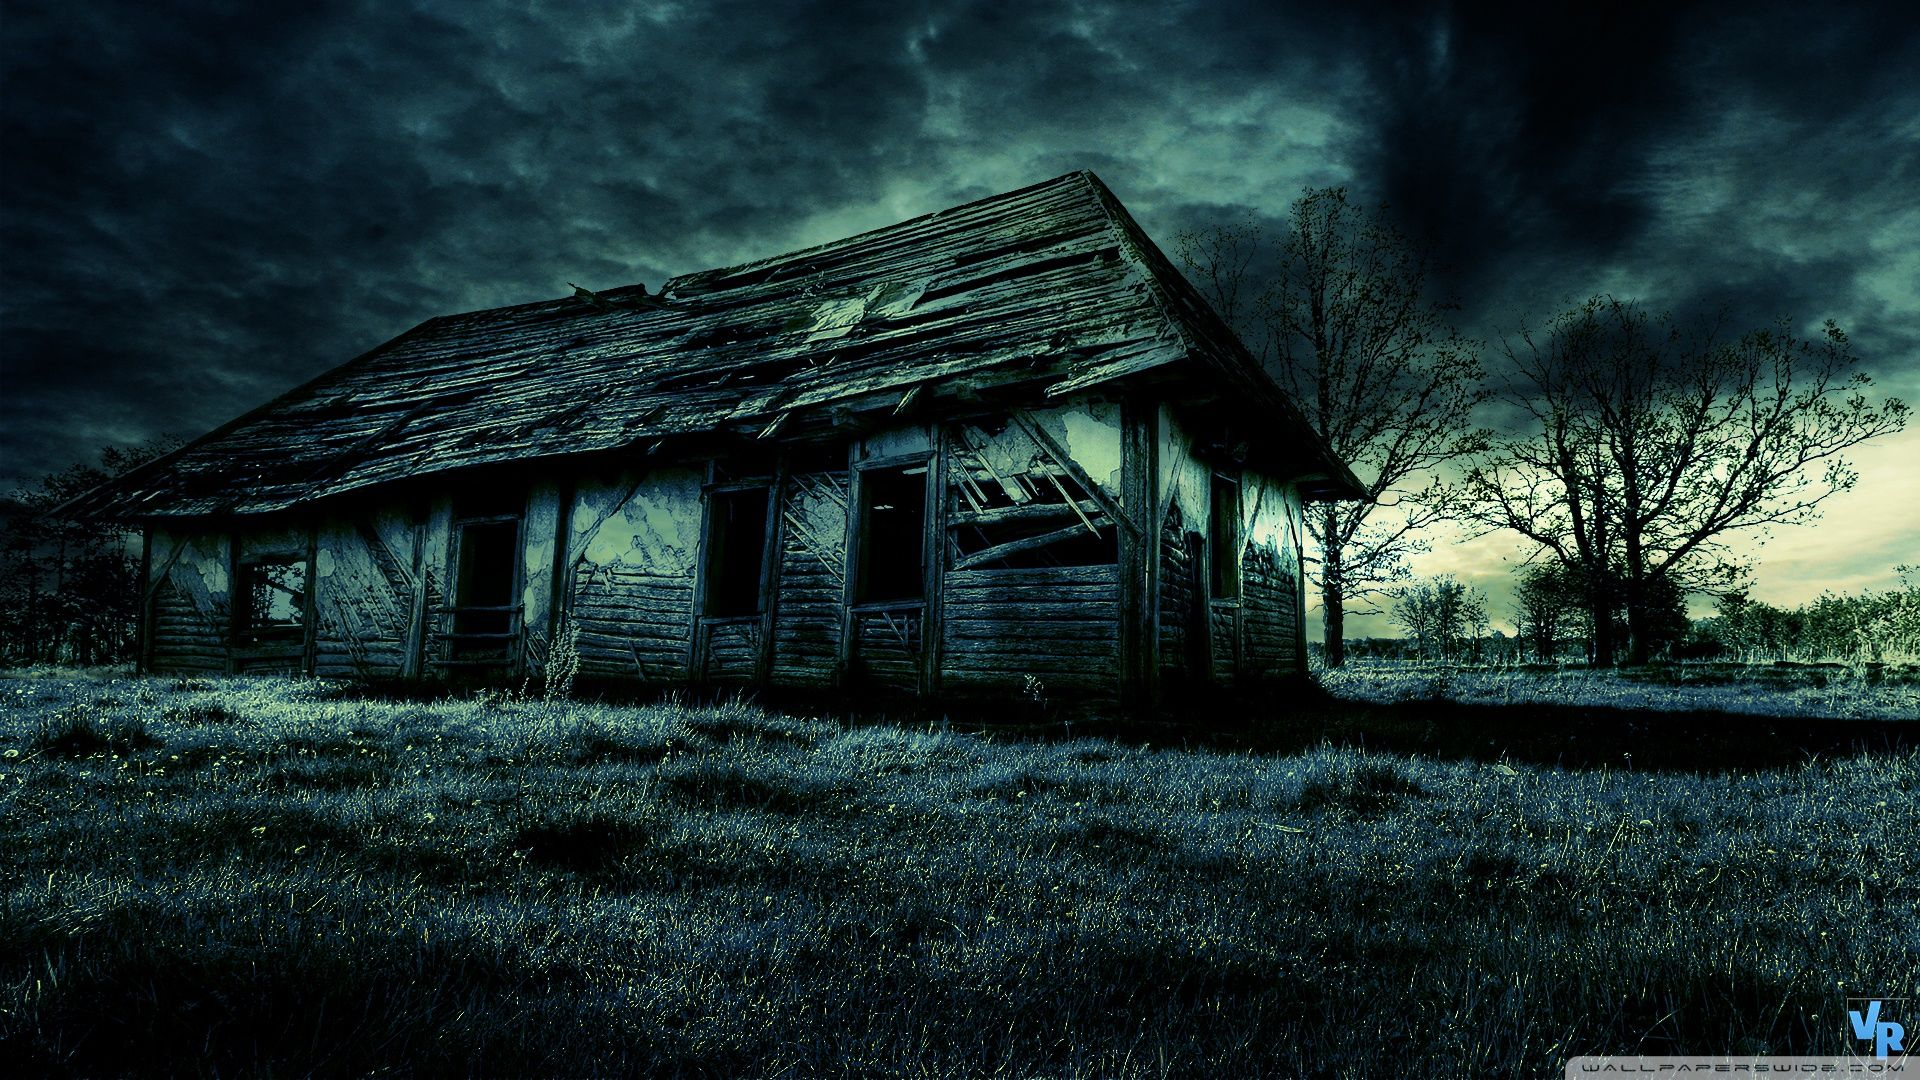 dark wallpaper widescreen hd images 3 hd wallpapers | welcome to my